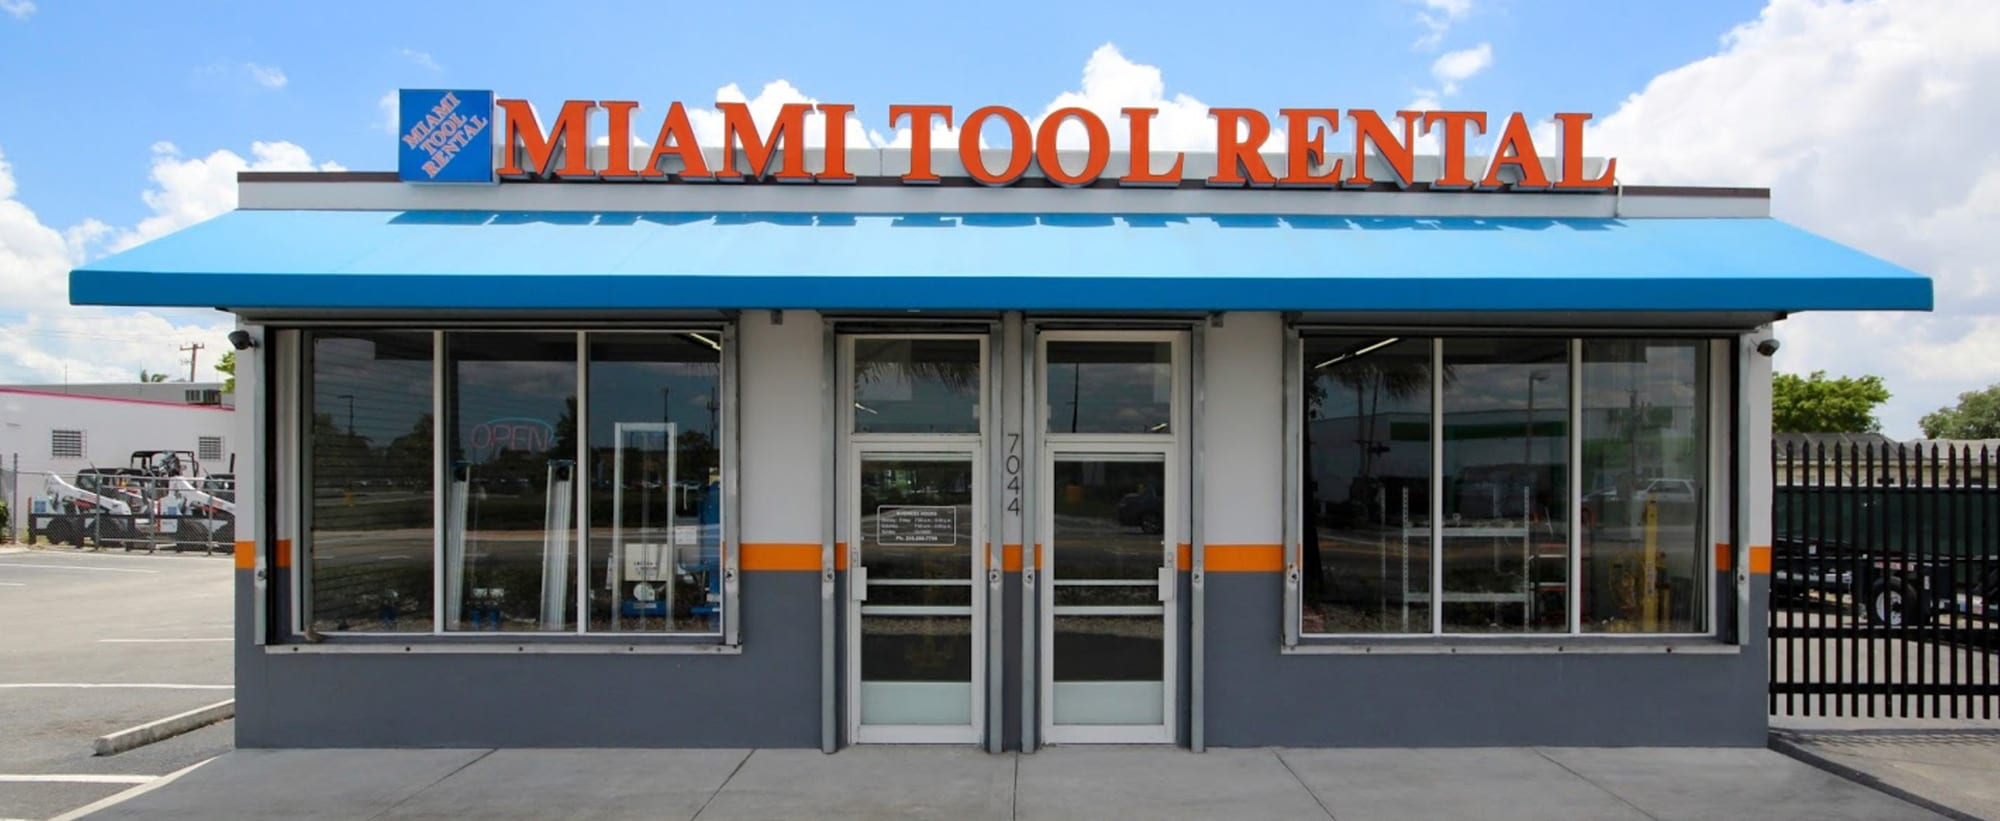 Miami Tool Rental 8th St